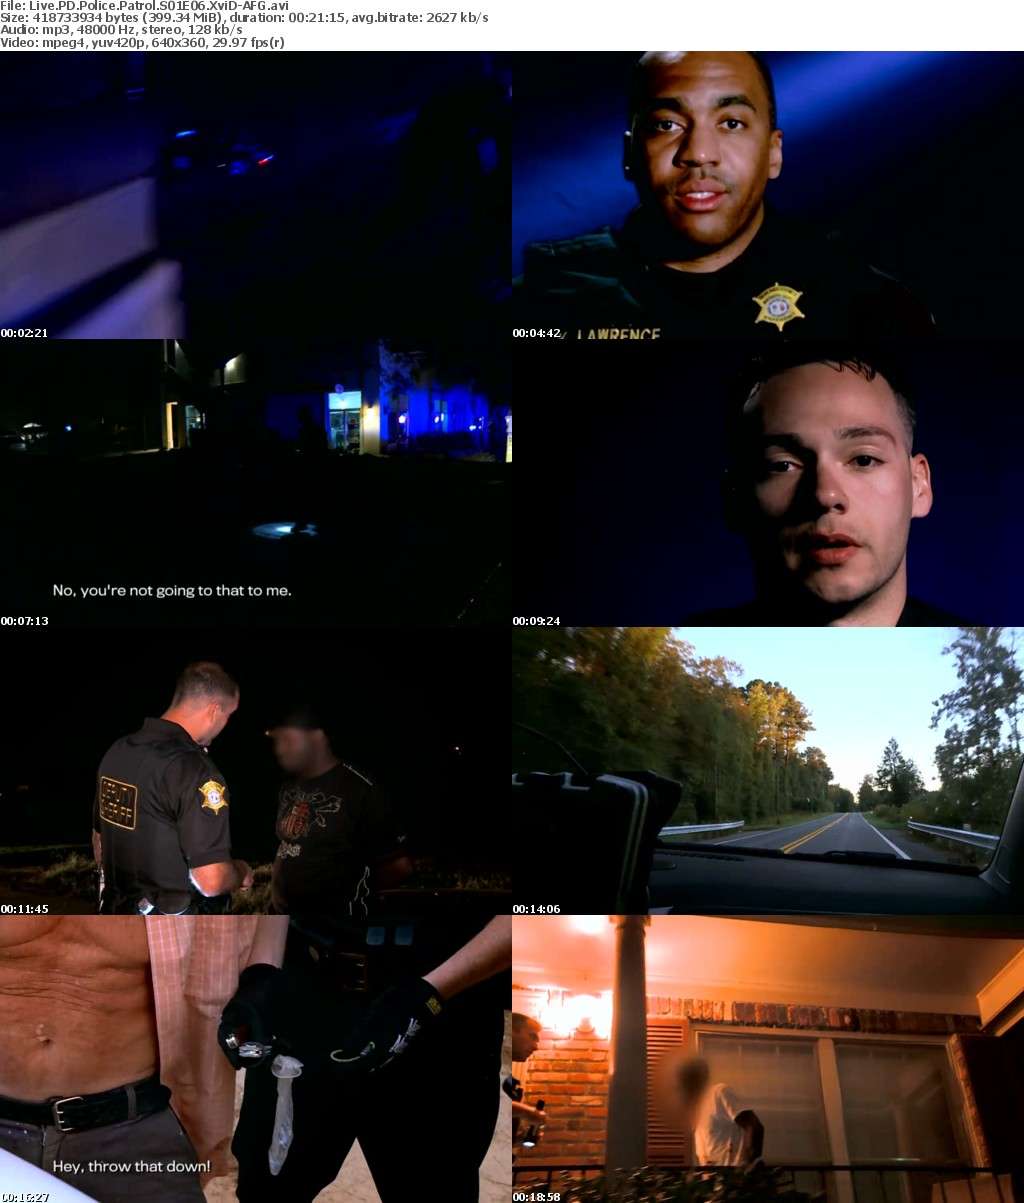 Watch Movie Live PD: Police Patrol - Season 1